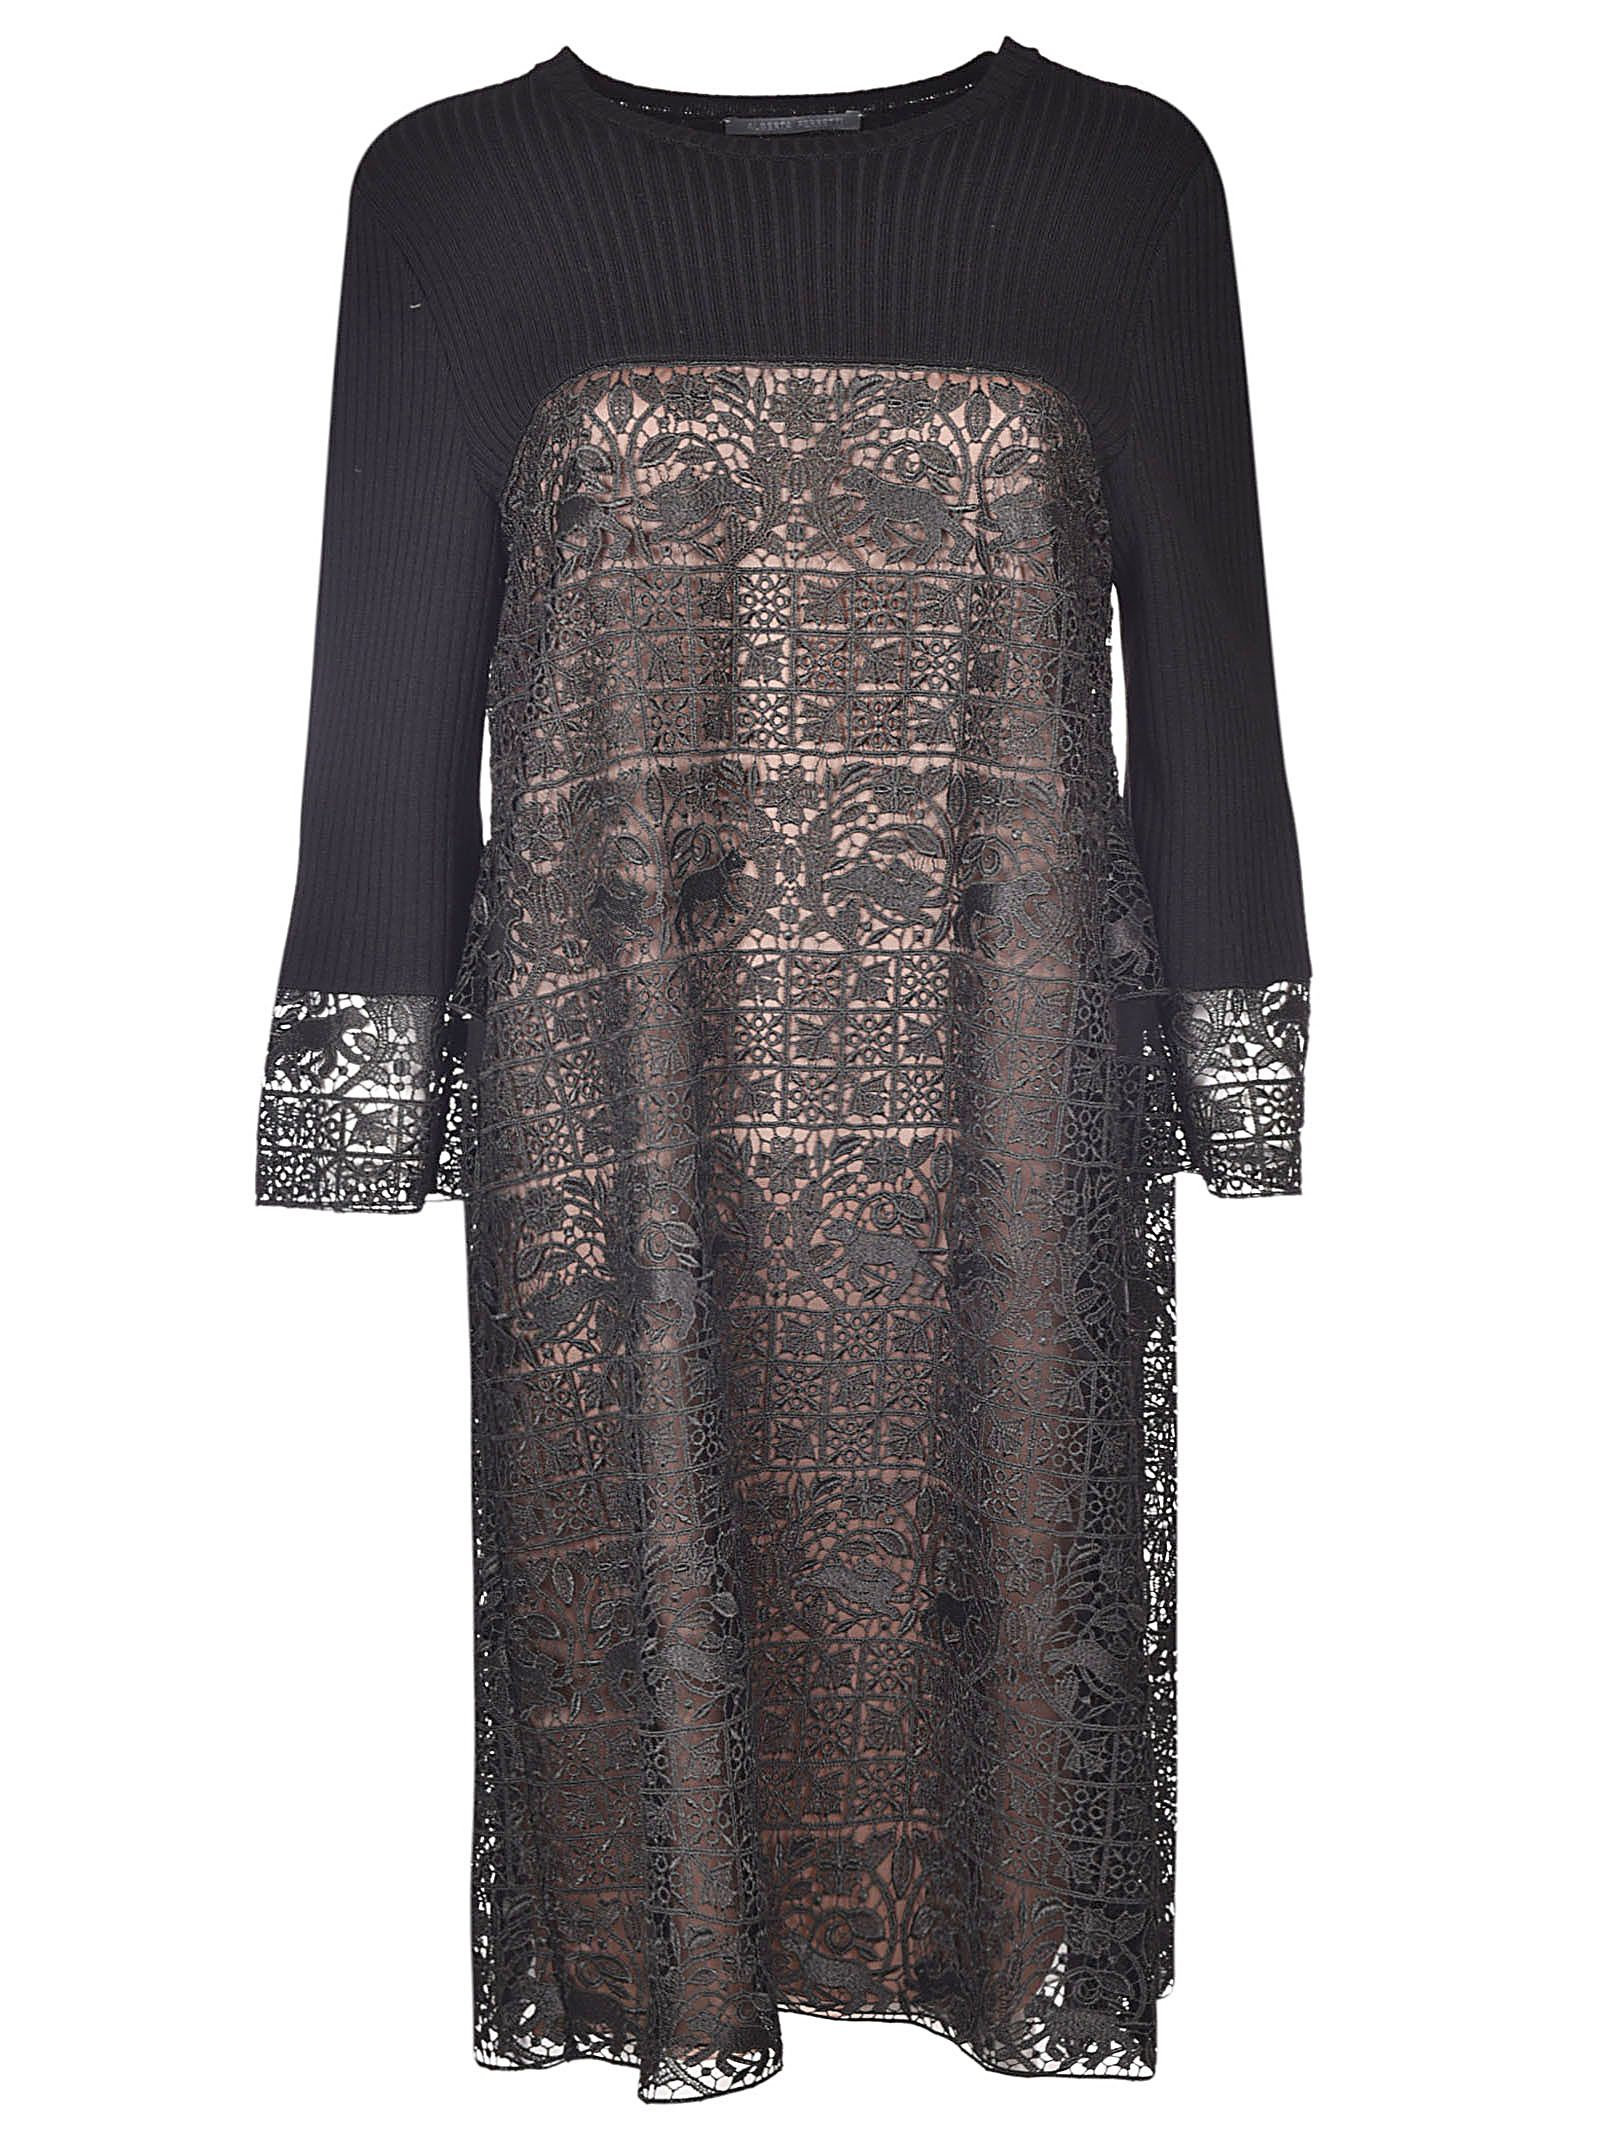 Alberta Ferretti Embroidered Panel Knit Dress